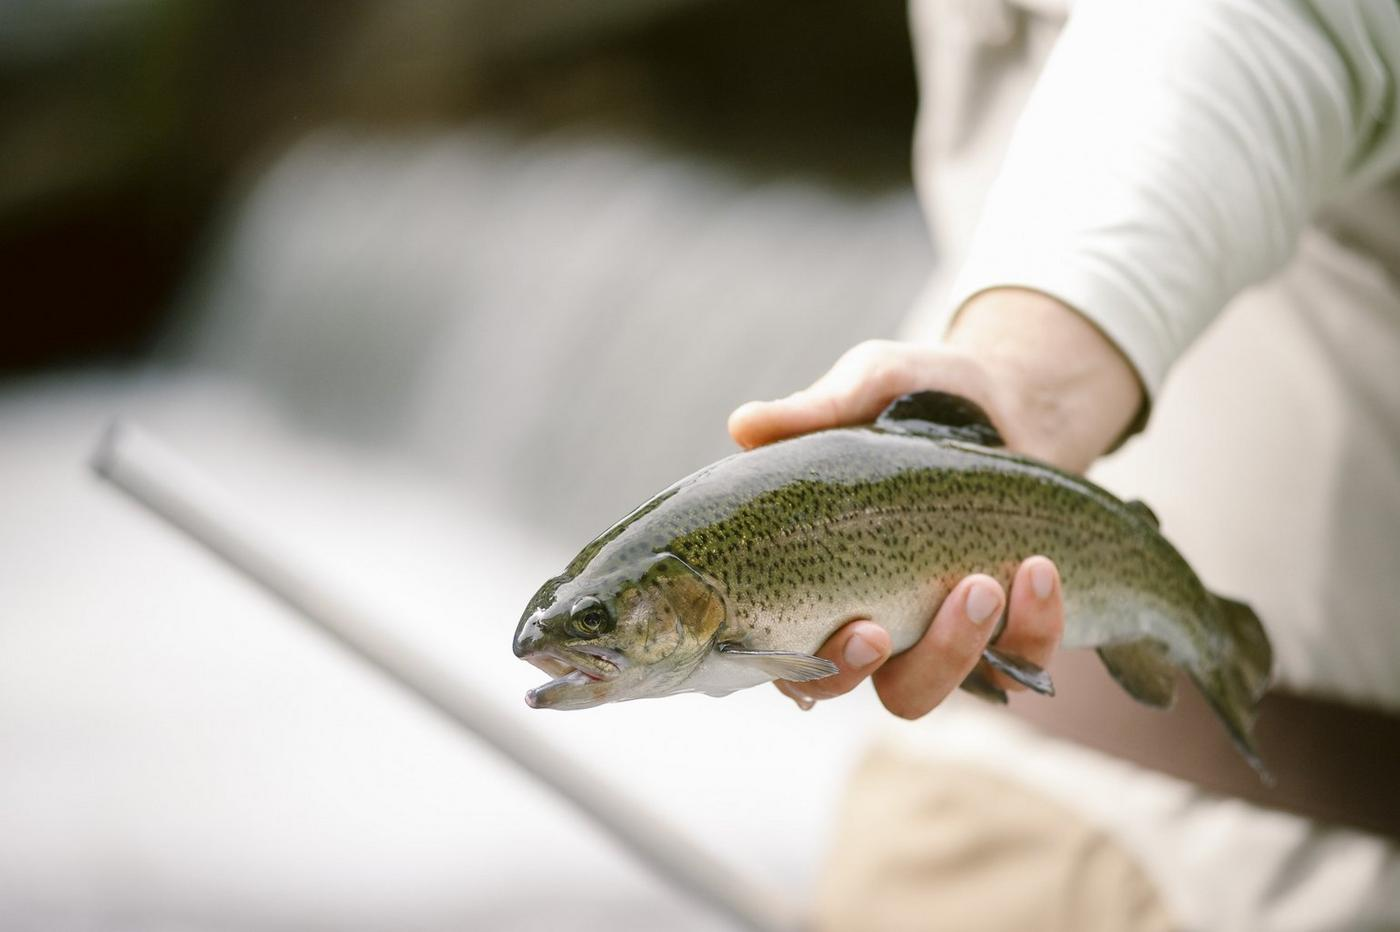 Angler holding a trout